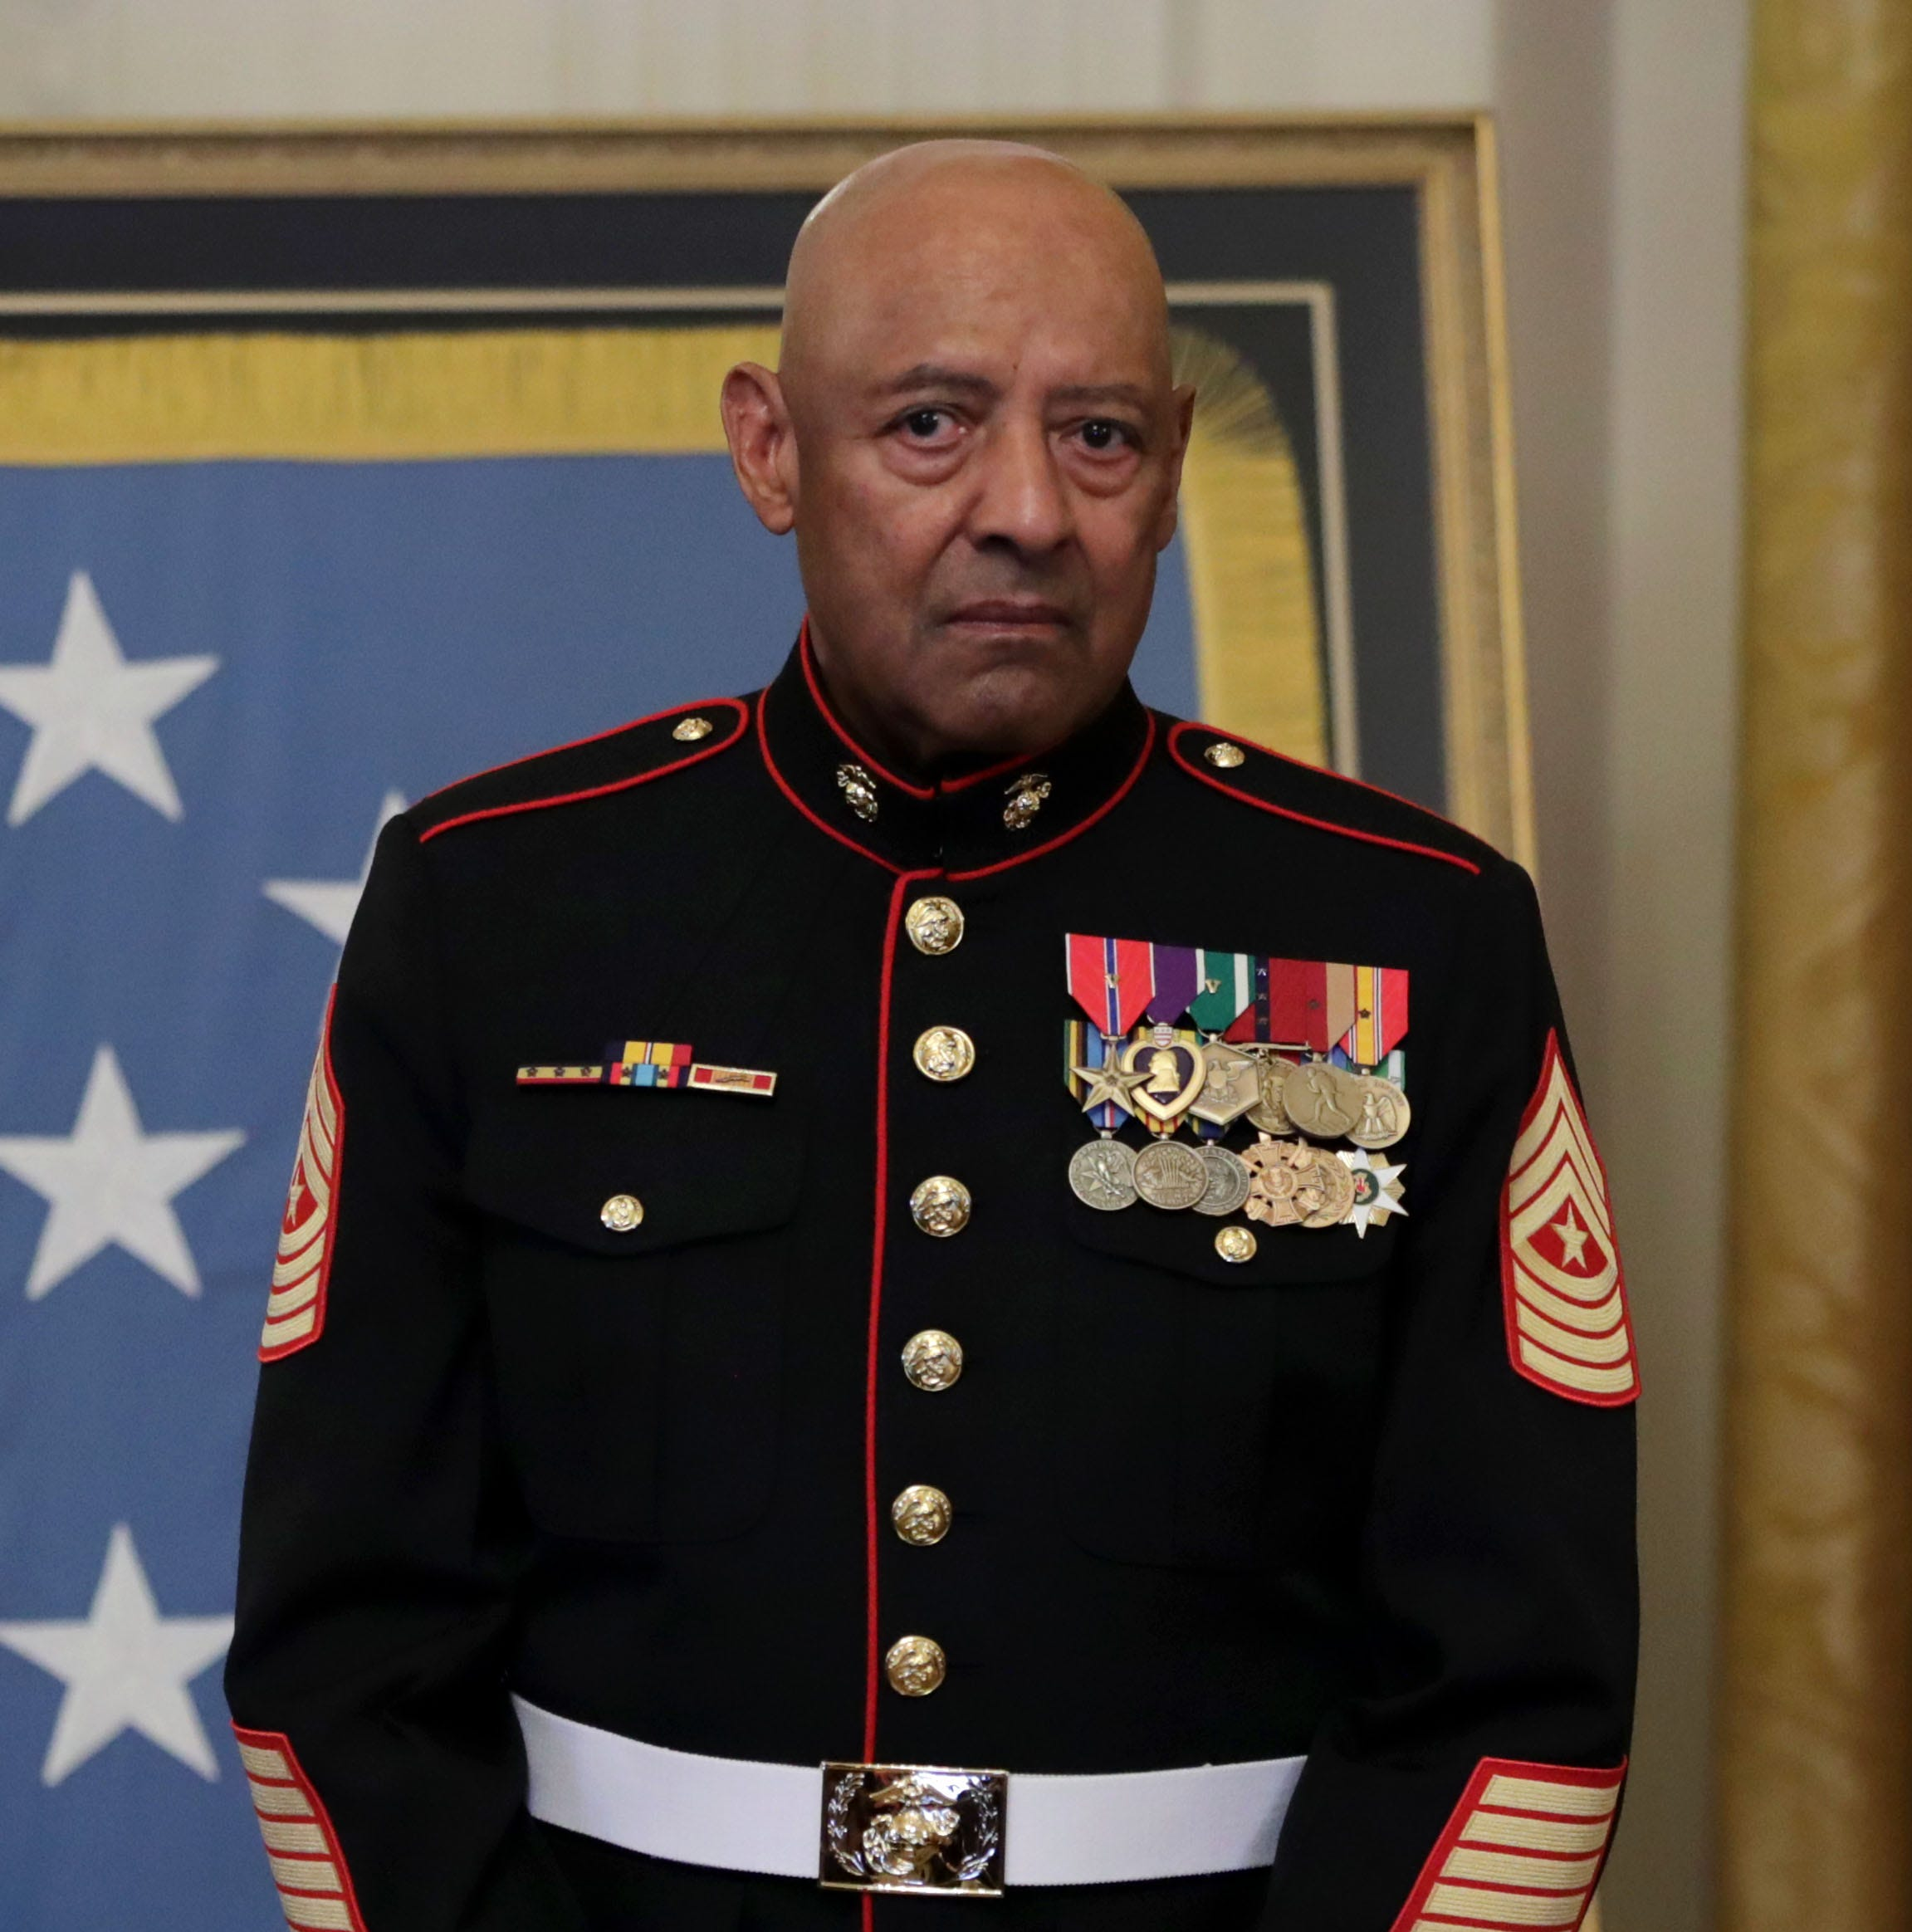 Retired Marine Sgt. Major John L. Canley is honored during a ceremony in the East Room of the White House October 17, 2018 in Washington, D.C.